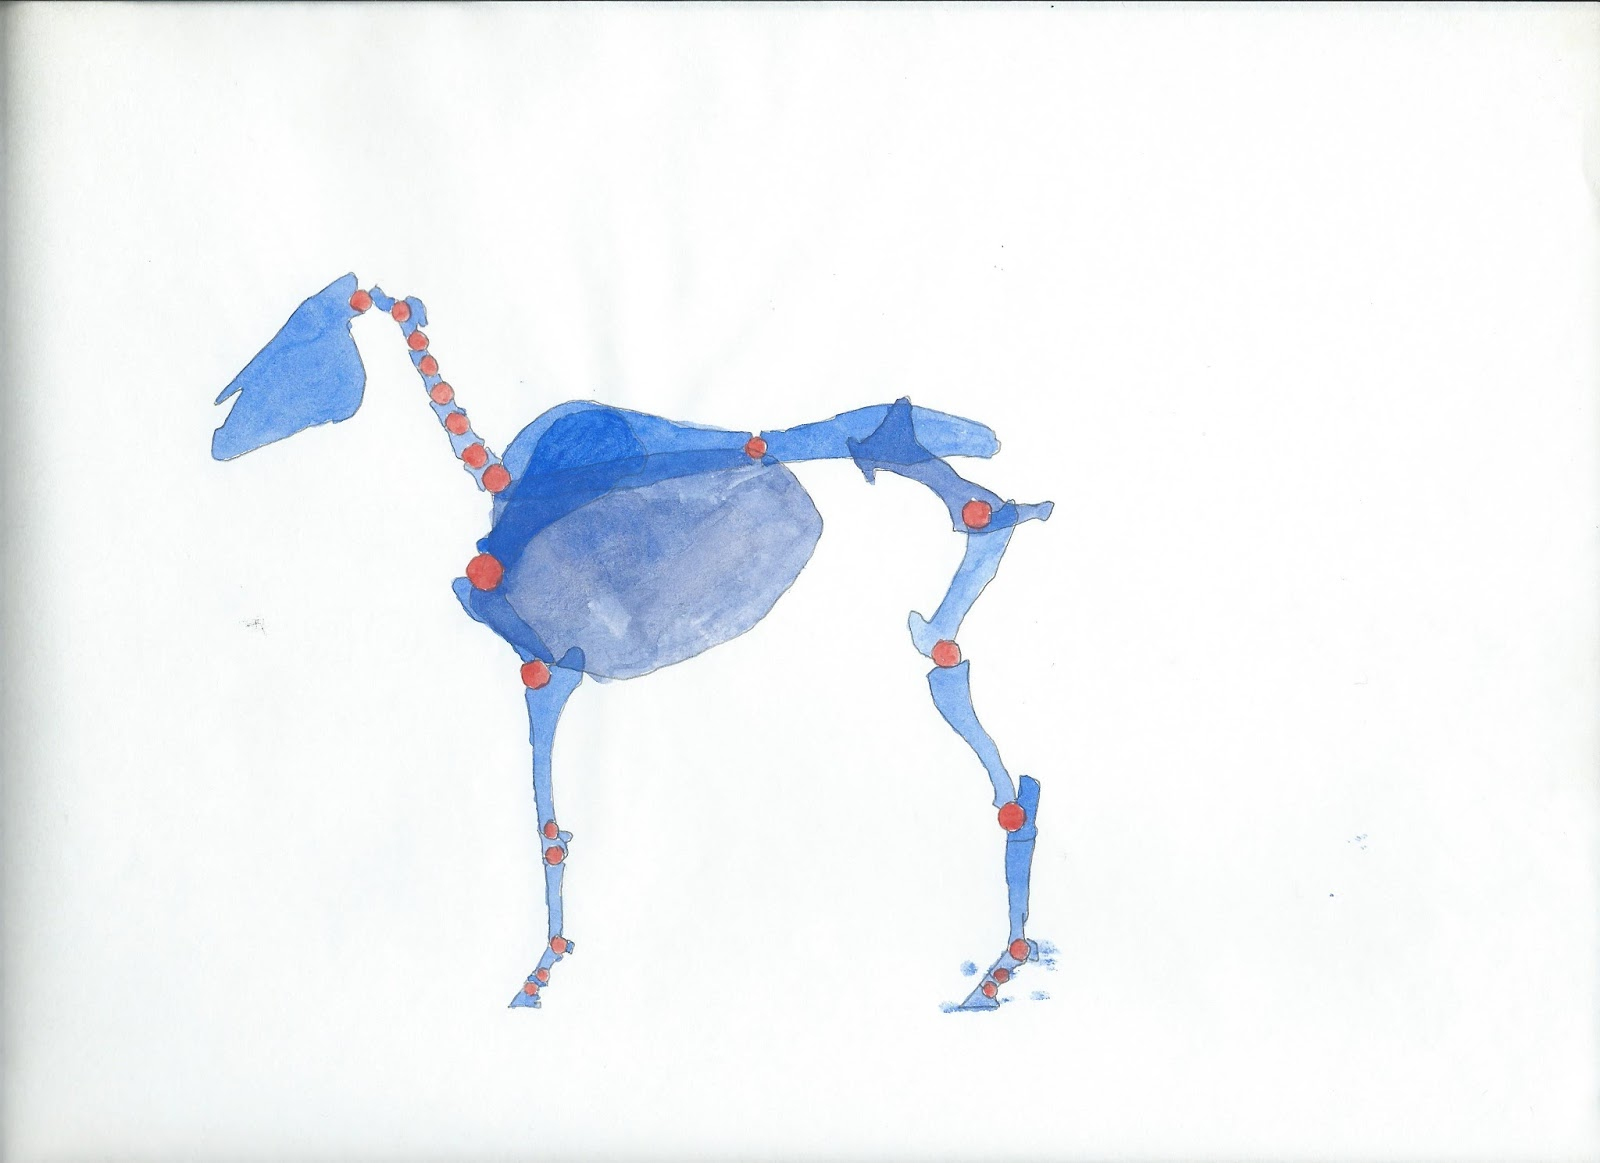 horsepower: Horse anatomy and movement